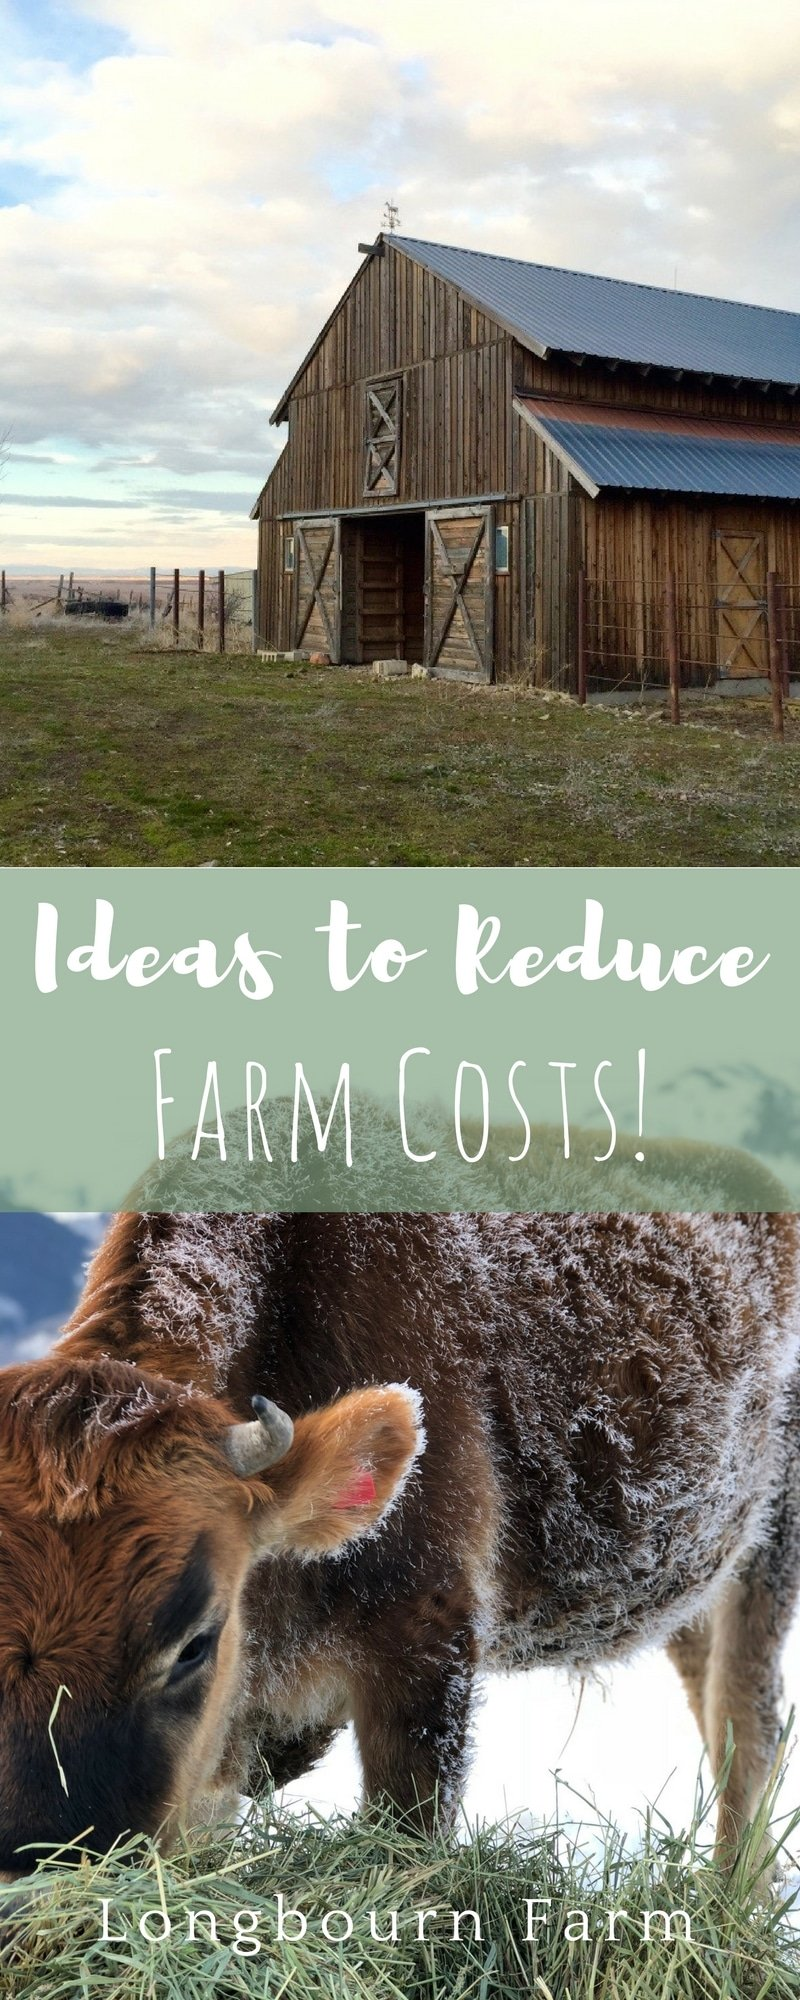 Check out this post for 8 ways you can reduce the cost of your farm. Typical ideas to out-of-the-box ways you can save a buck. via @longbournfarm